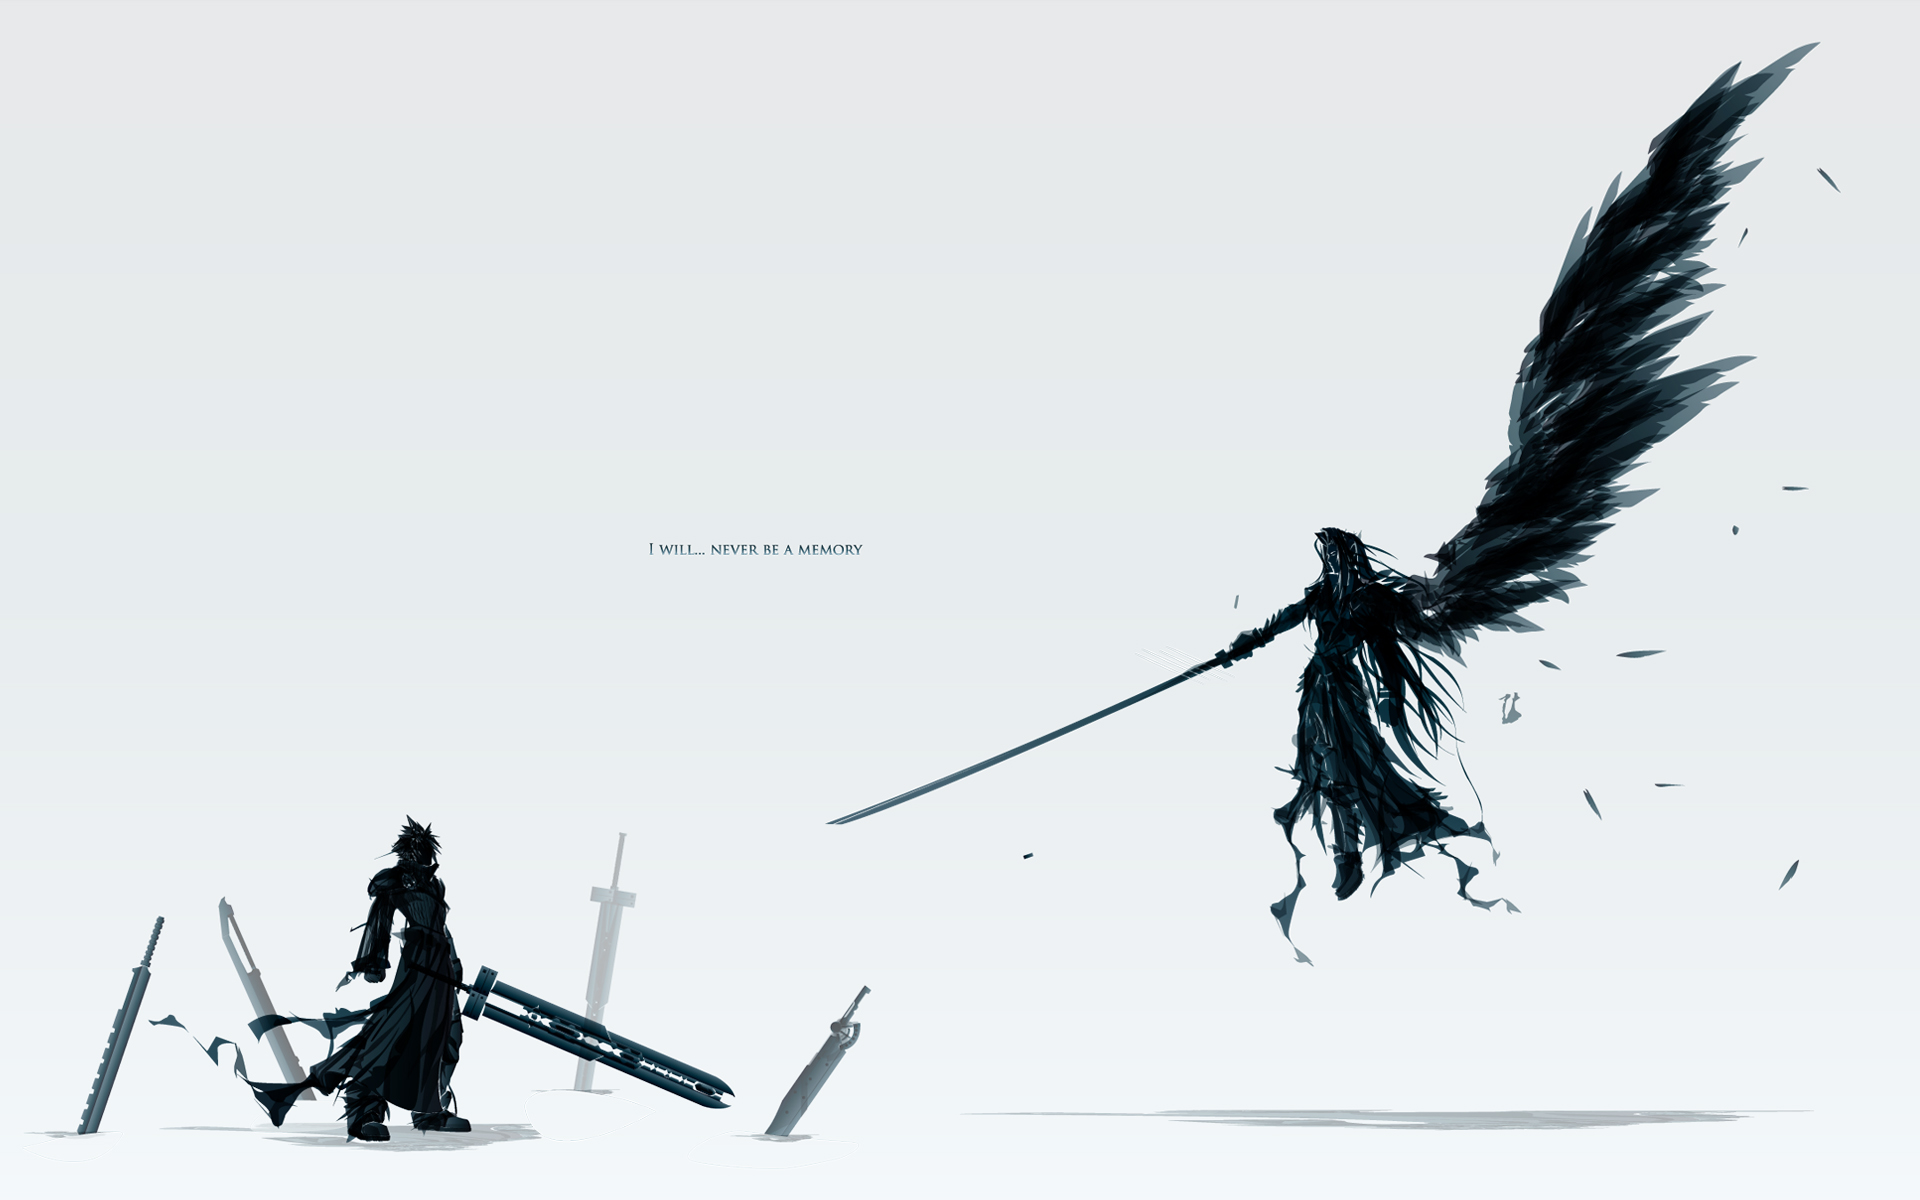 final fantasy vii, wallpaper - zerochan anime image board